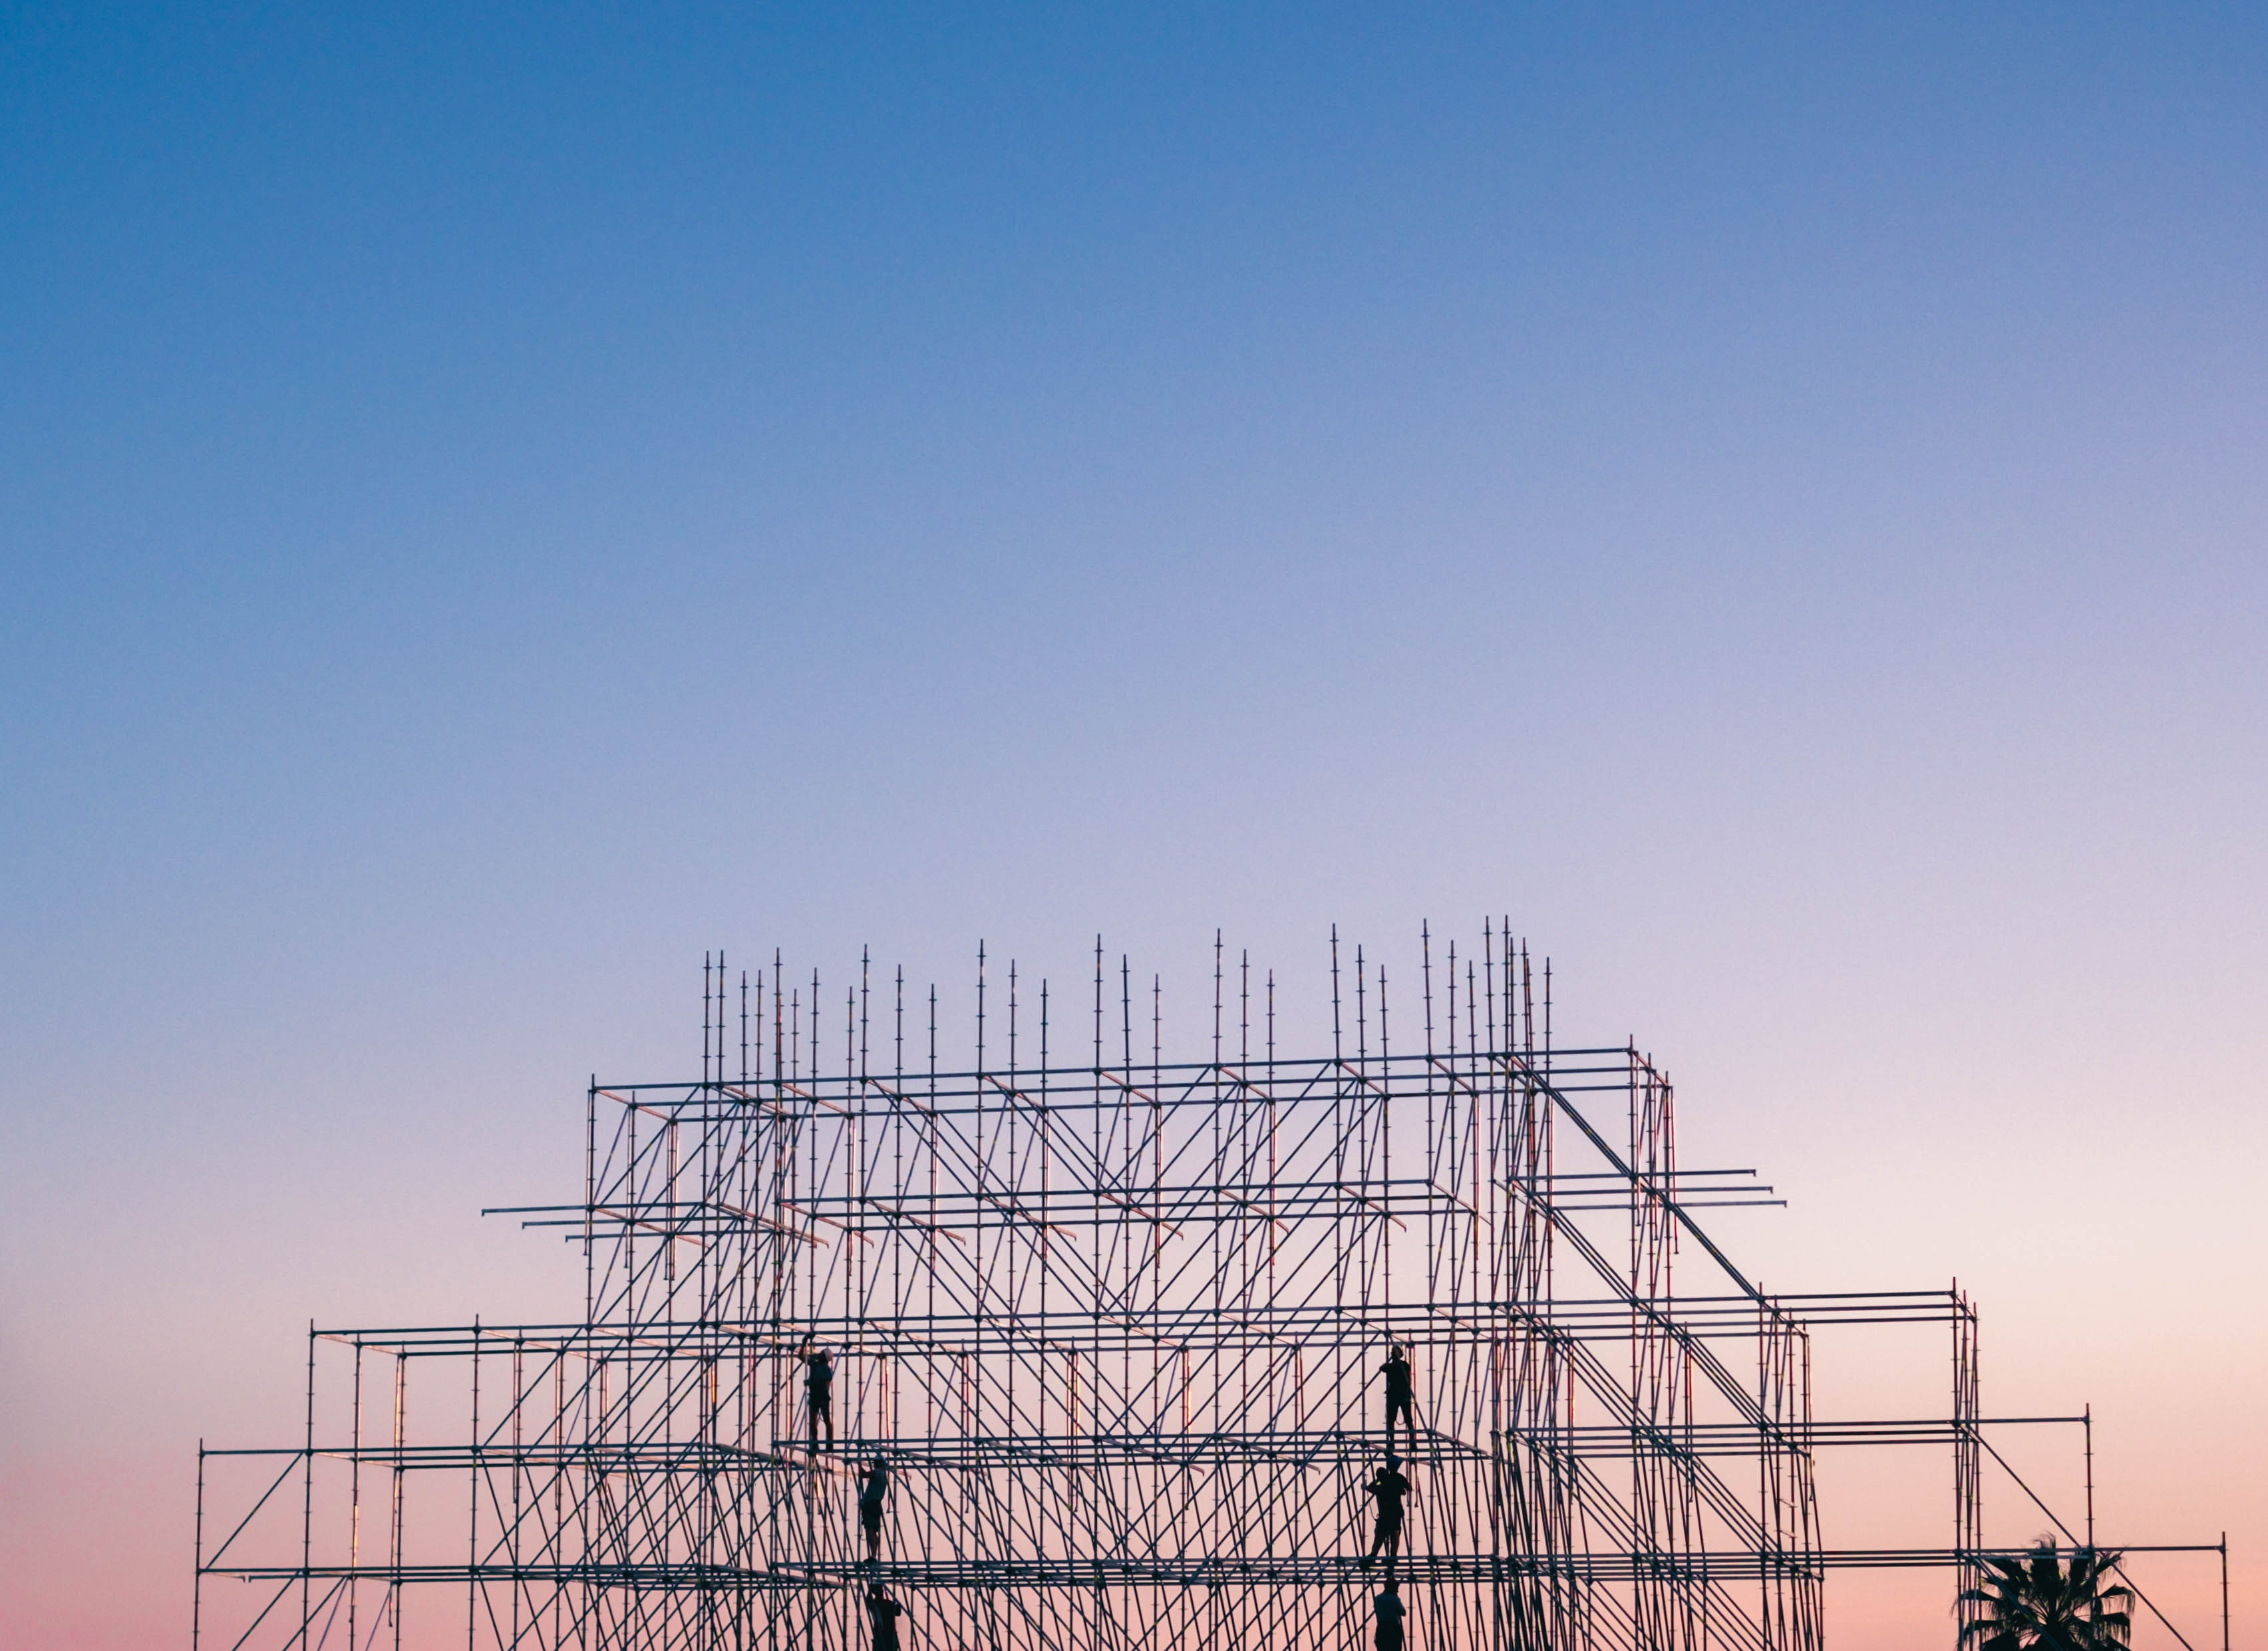 A scaffold reaching to the sky